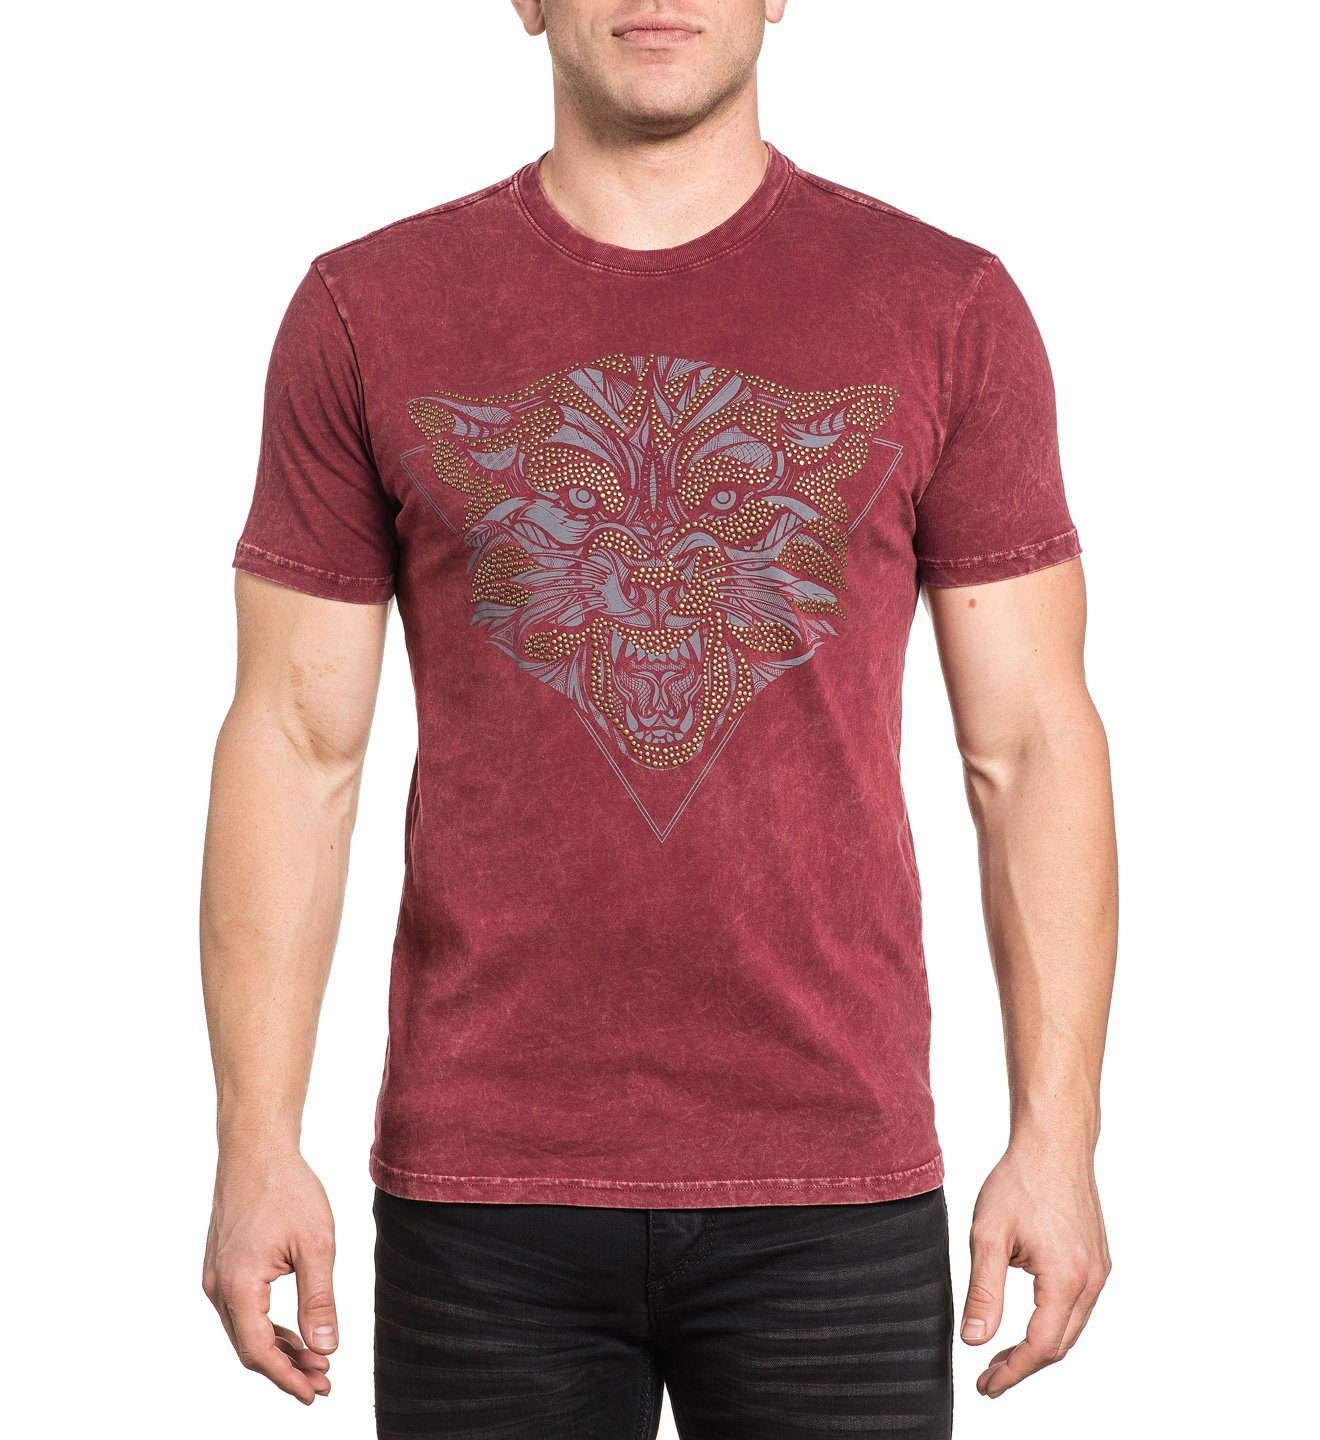 Wolfsbane Haze - Mens Short Sleeve Tees - Affliction Clothing